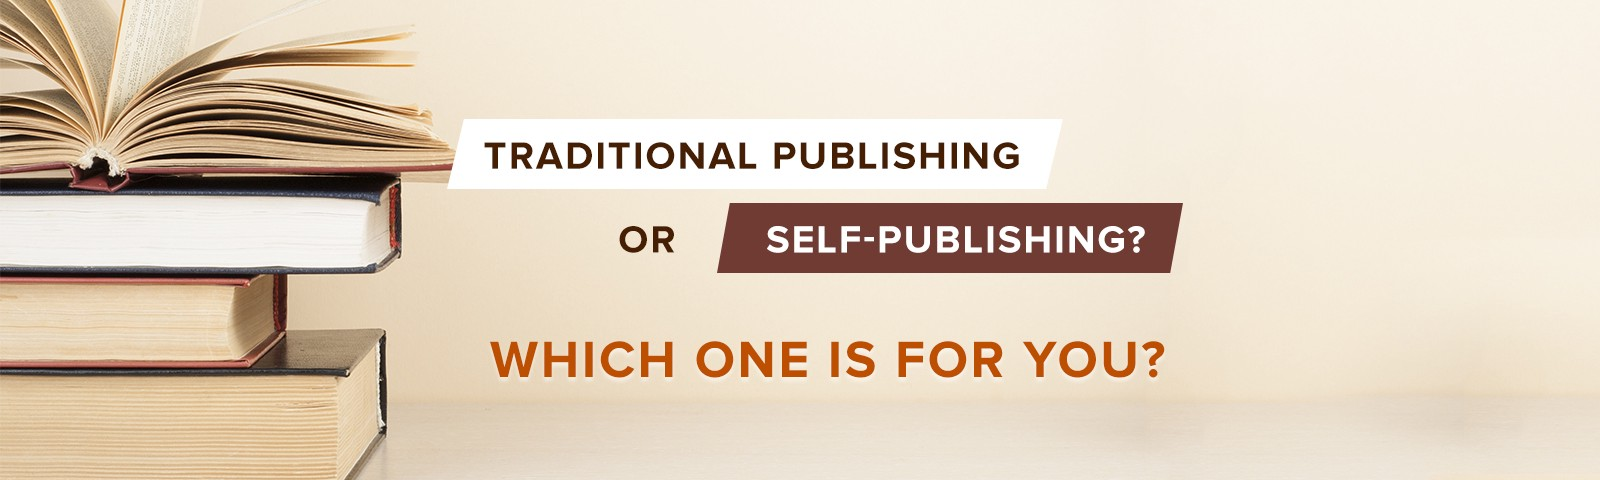 traditional vs self-publishing